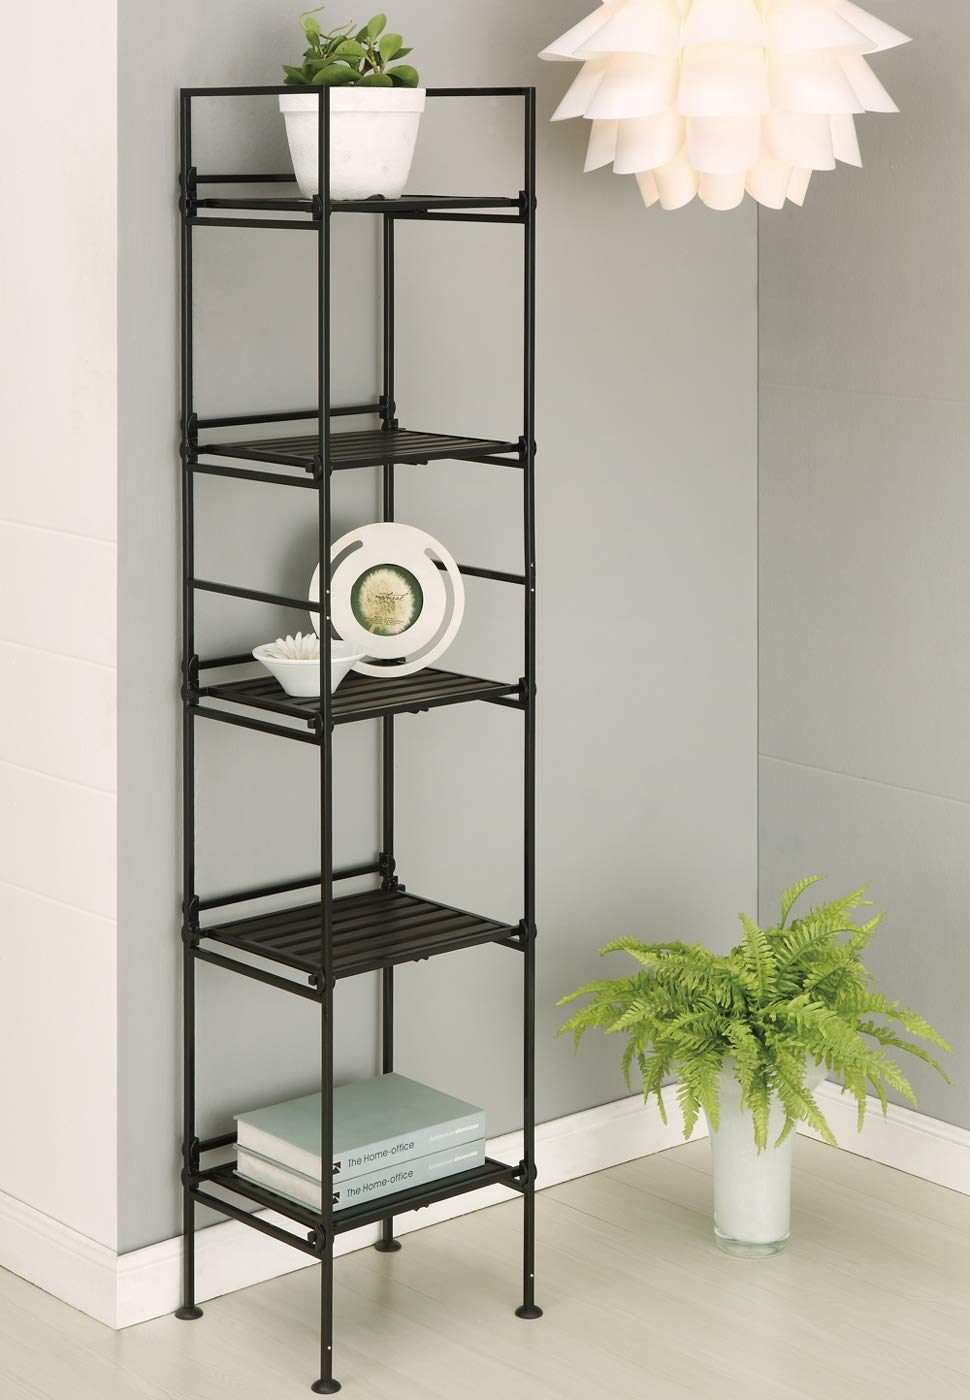 SKB family 5 Tier Square Shelf by Neu Home, 56.63'' x 11.38'' x 19 lbs